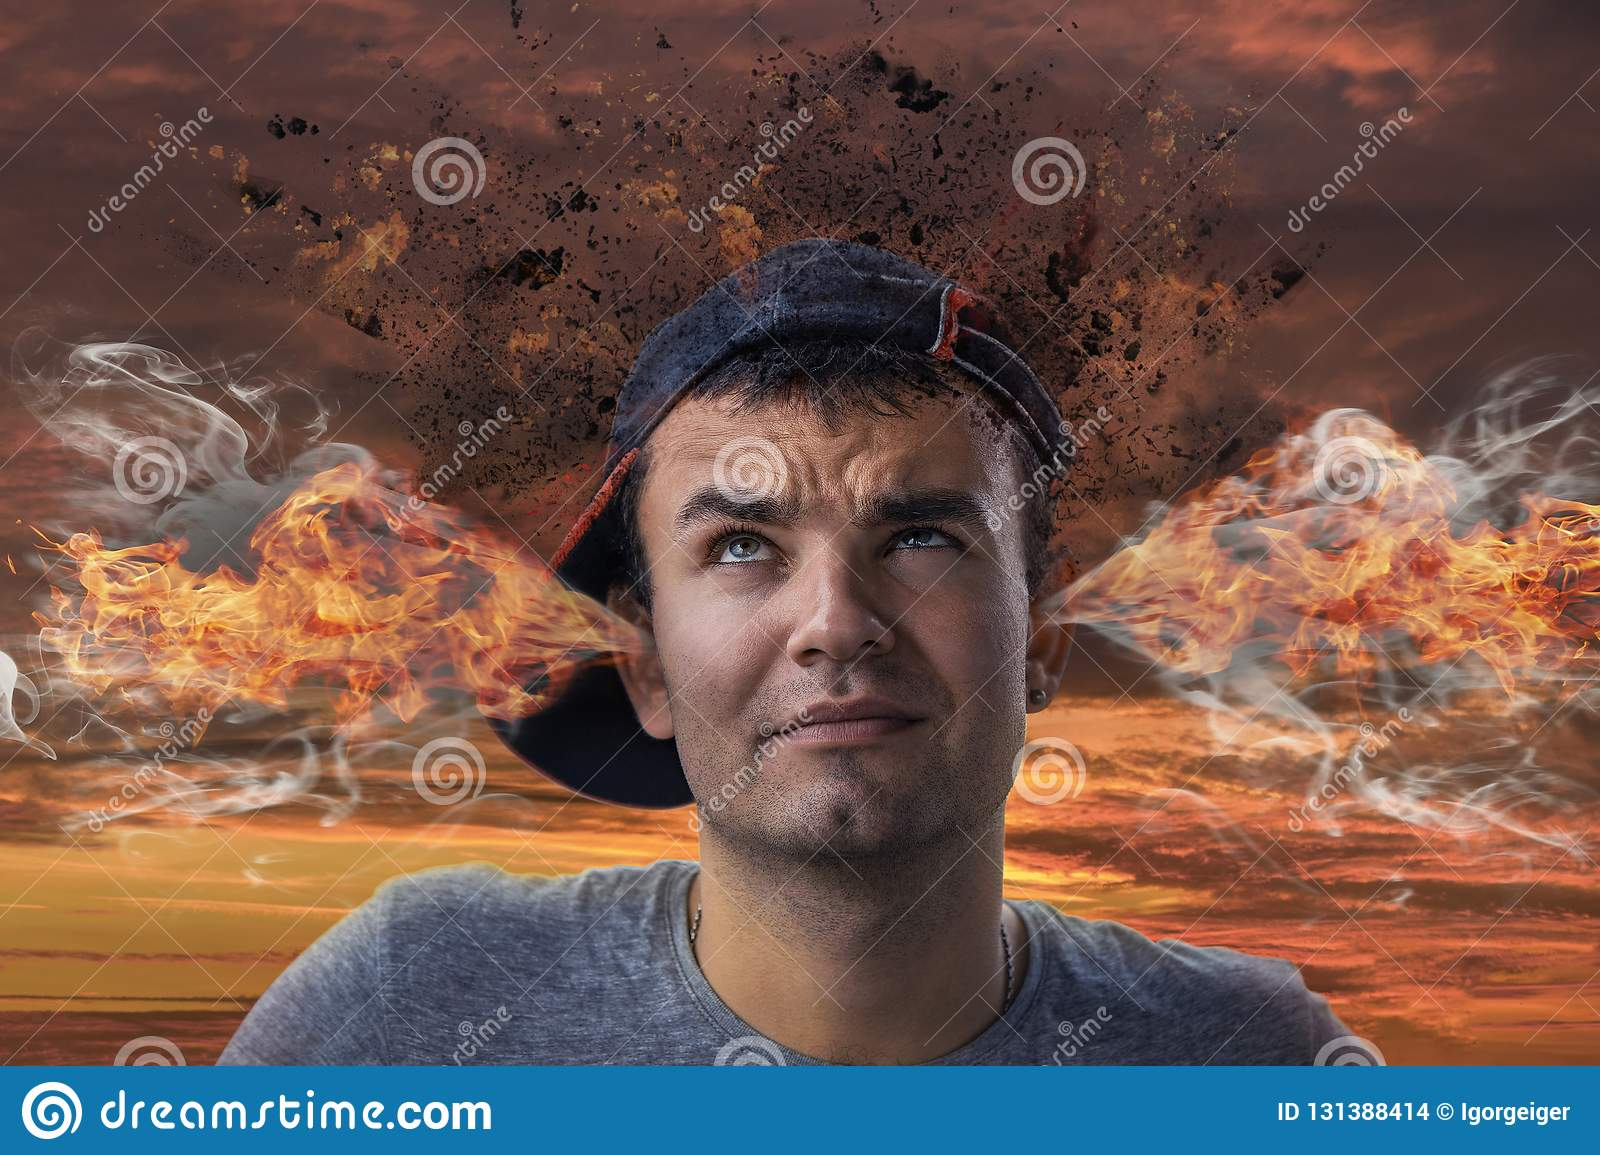 Conceptual image of a tense young man with smoke coming out of h